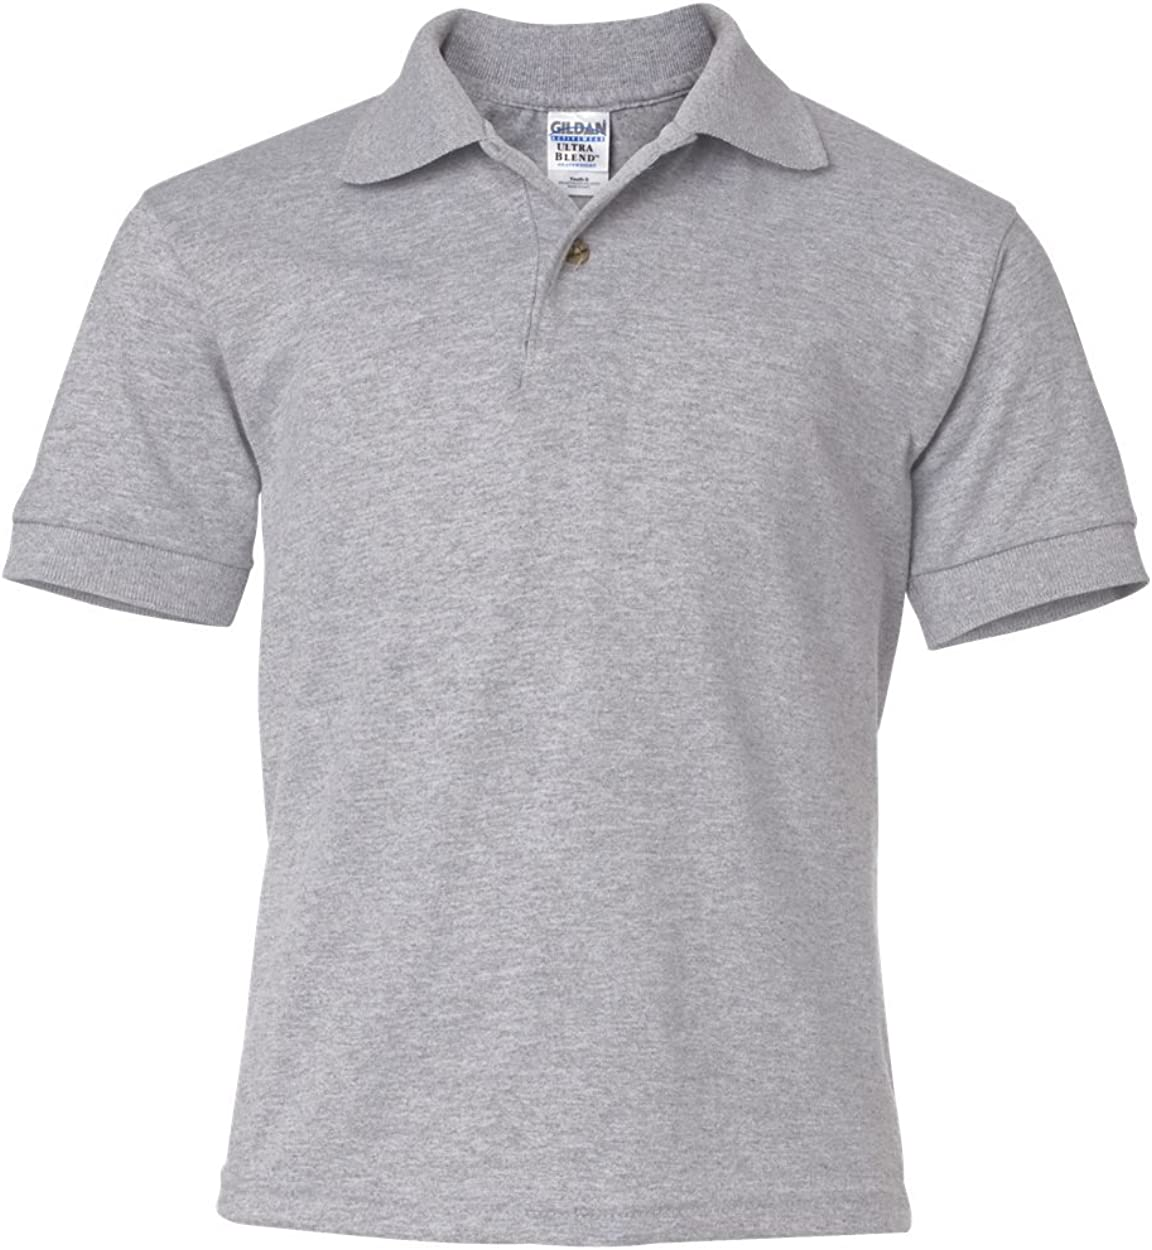 6 oz, 50/50 Jersey Polo (G880B) Grey, XL (Pack of 12)